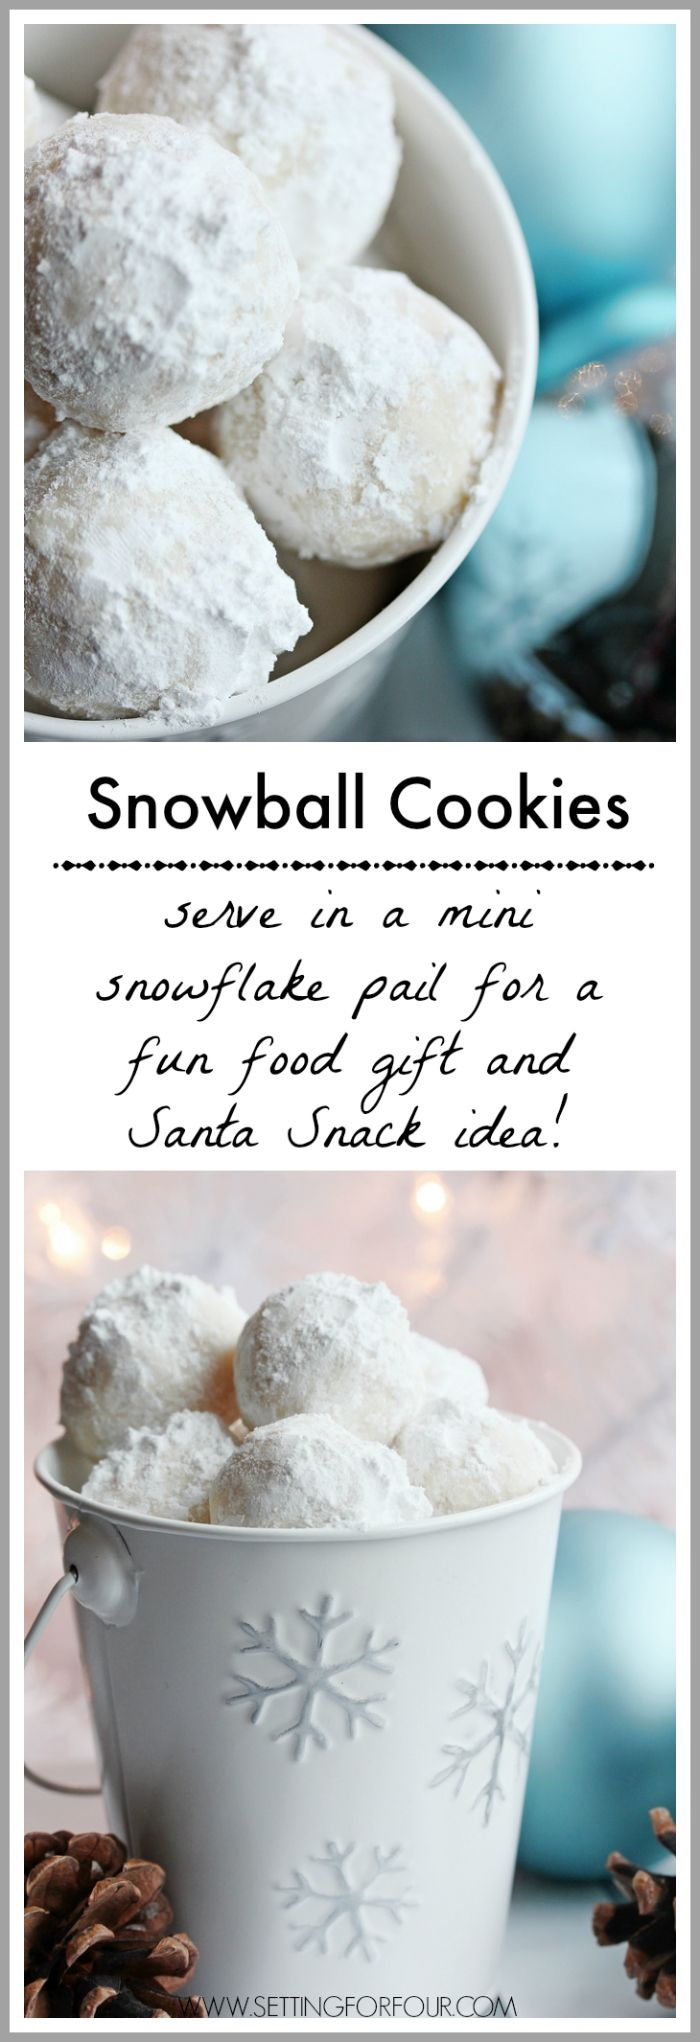 These Snowball Cookies look like adorable mini snowballs! Fabulous DIY Christmas gift Idea and Santa Snack idea too! www.settingforfour.com: